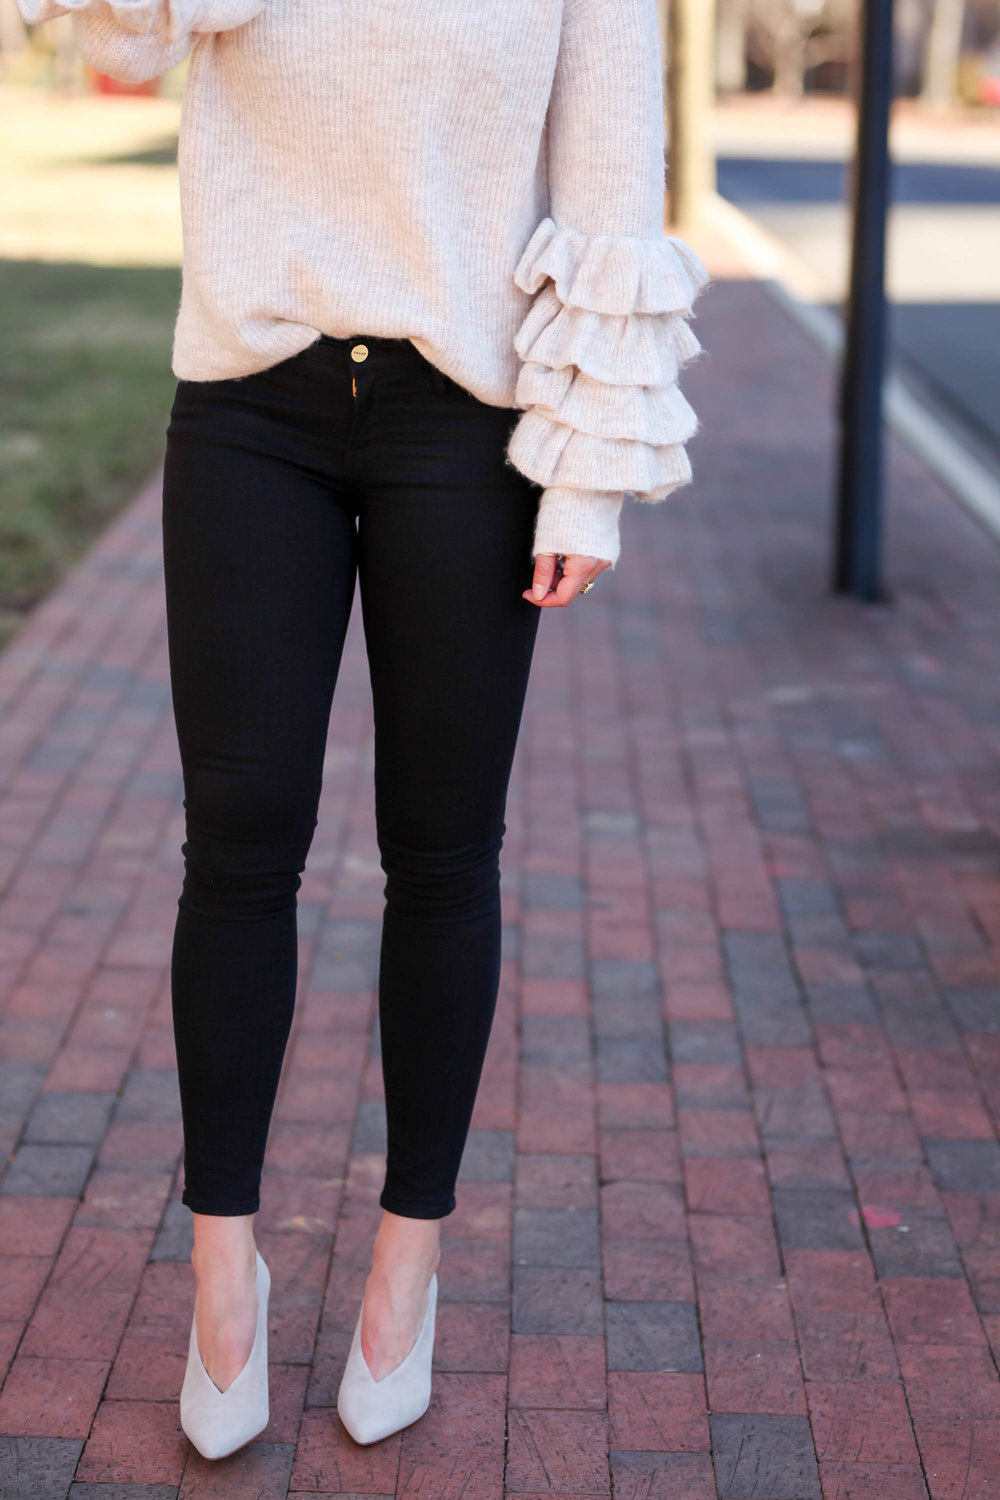 ruffle-sleeve-sweater-black-denim-suede-pumps-lauren-schwaiger-style-blogger.jpg